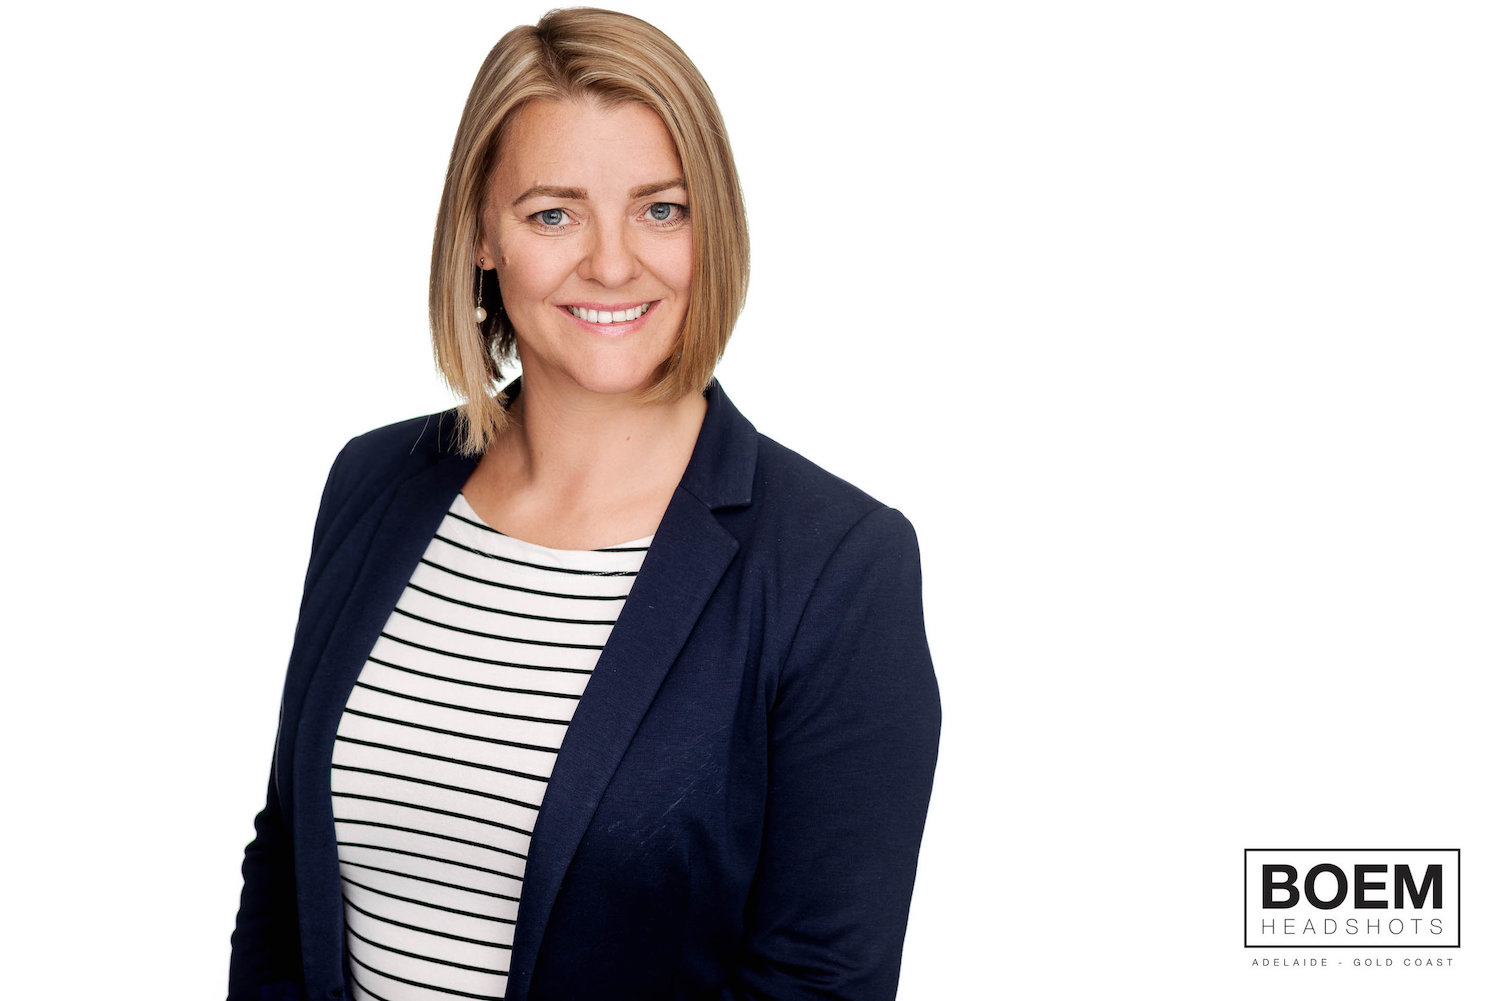 karen-executive-headshots-adelaide-1-7.jpg